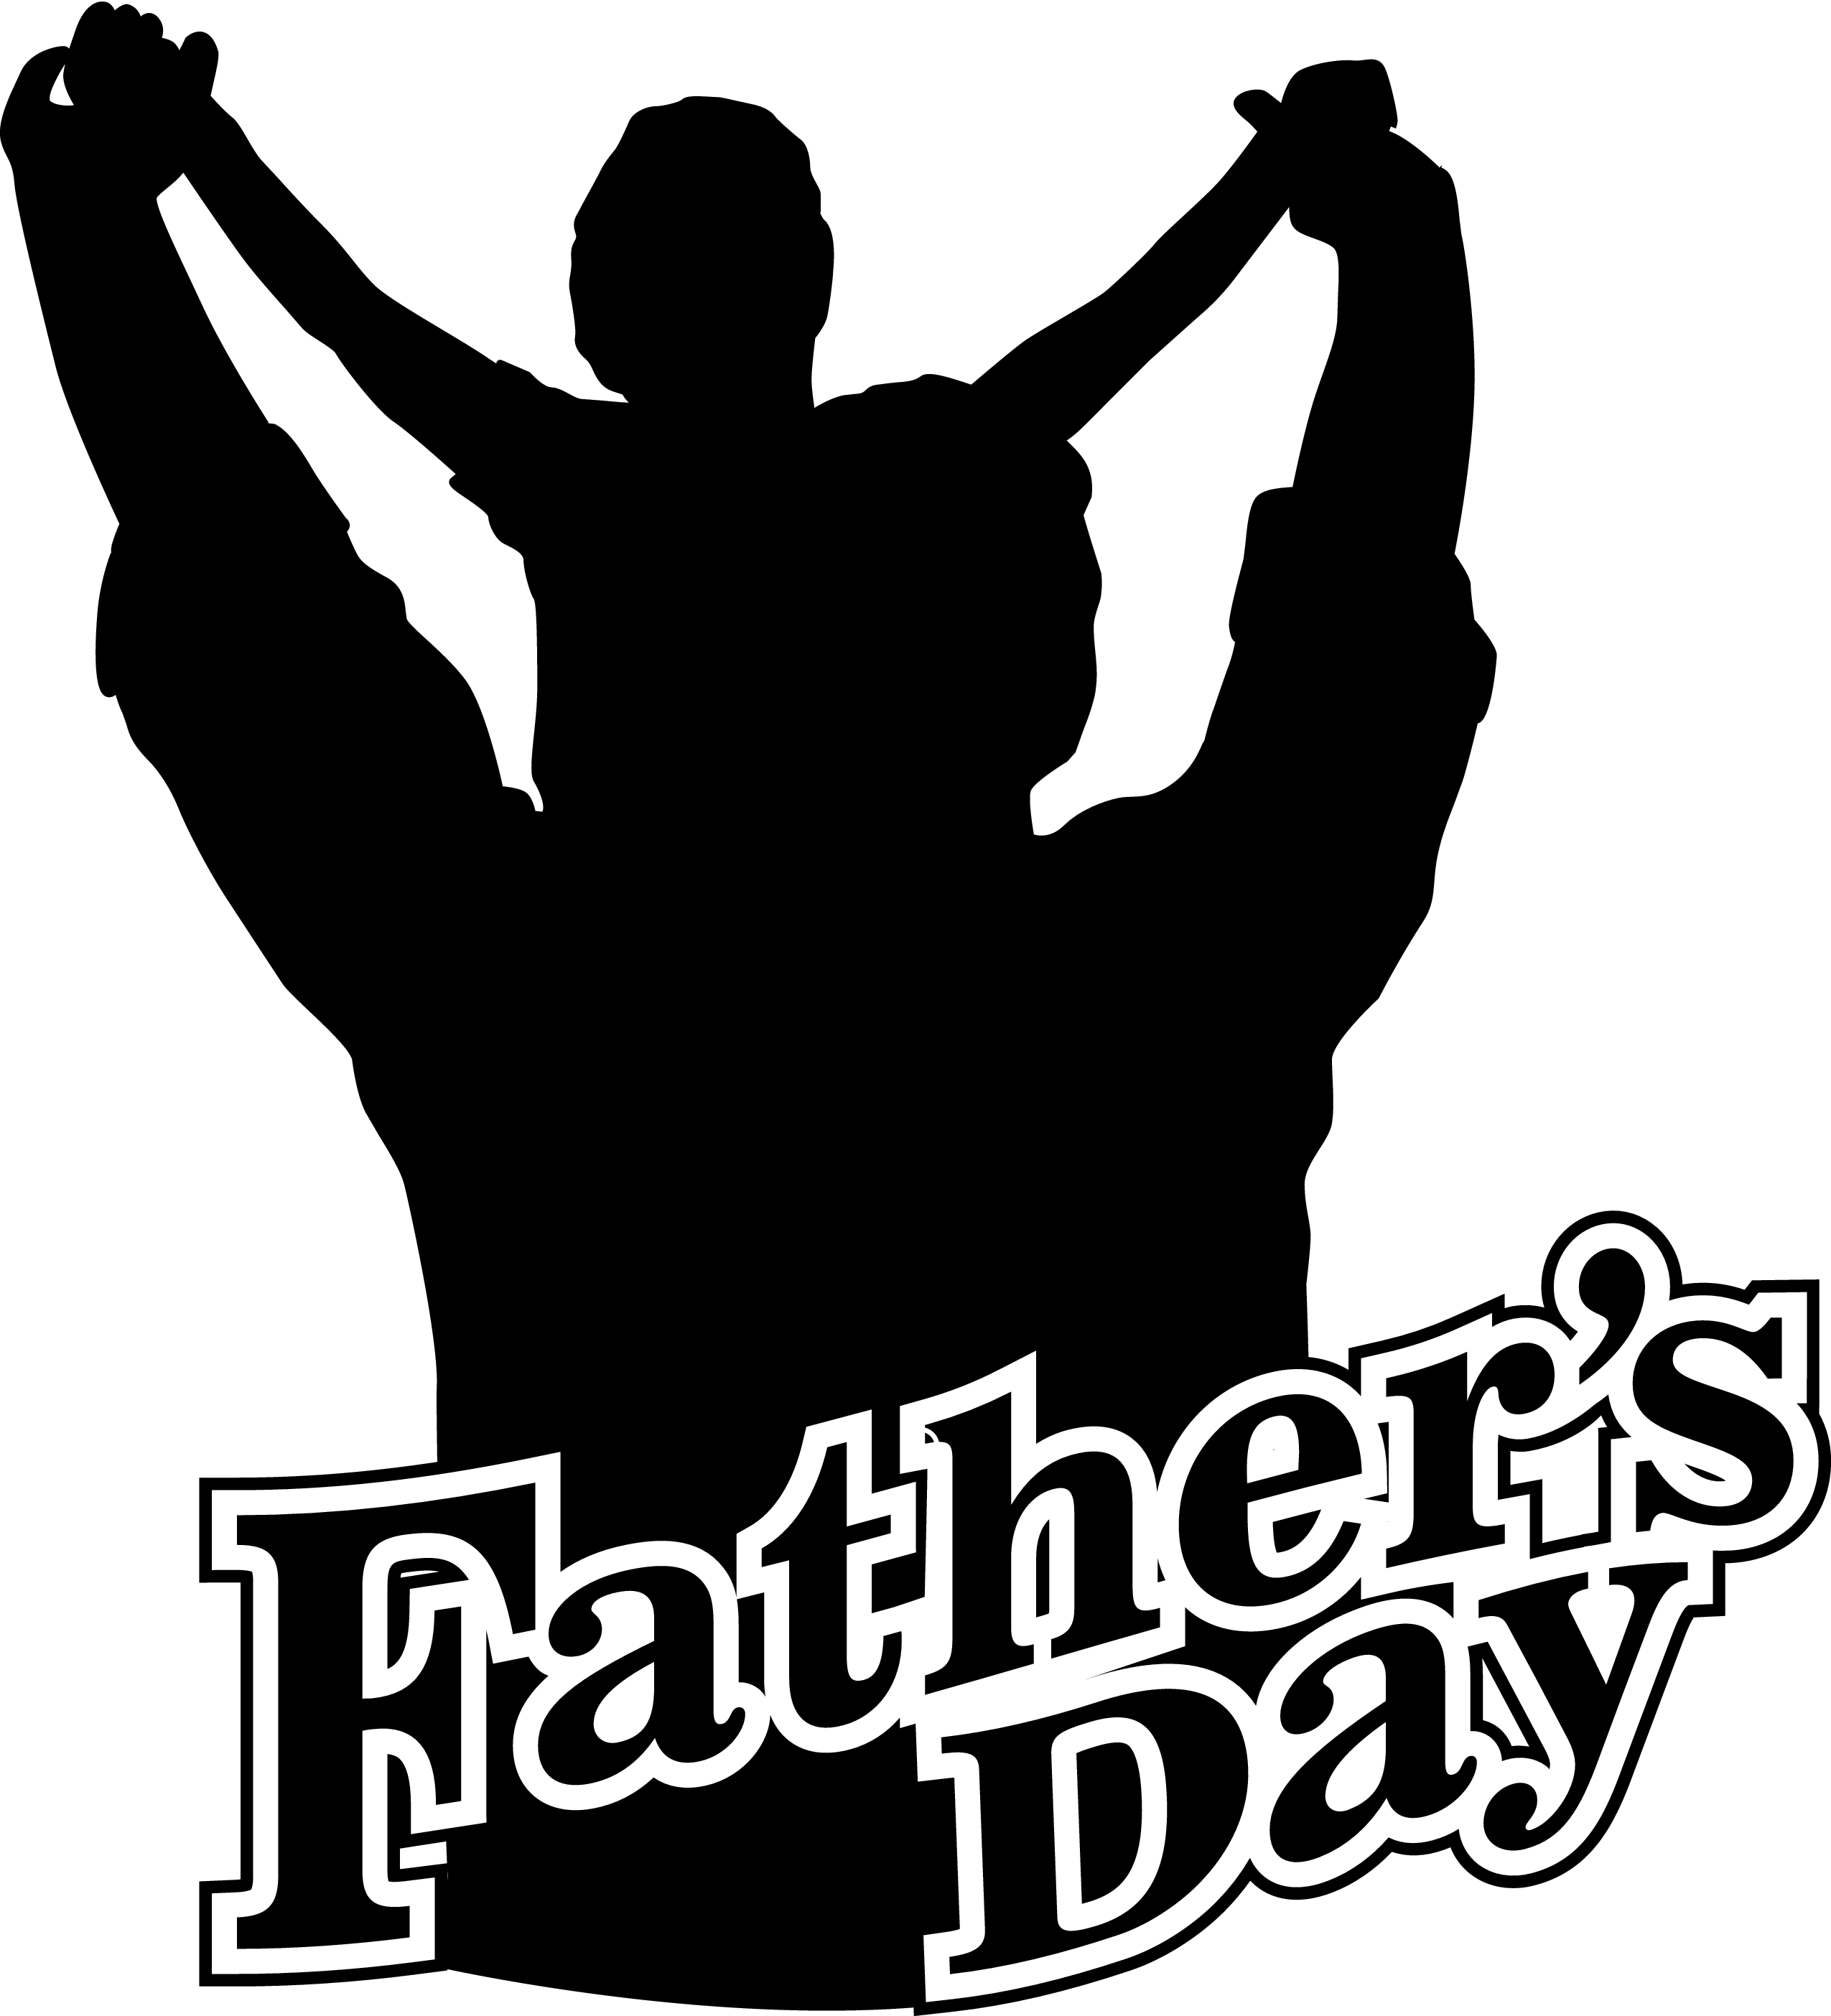 Free Free Fathers Day Clipart, Download Free Clip Art, Free.